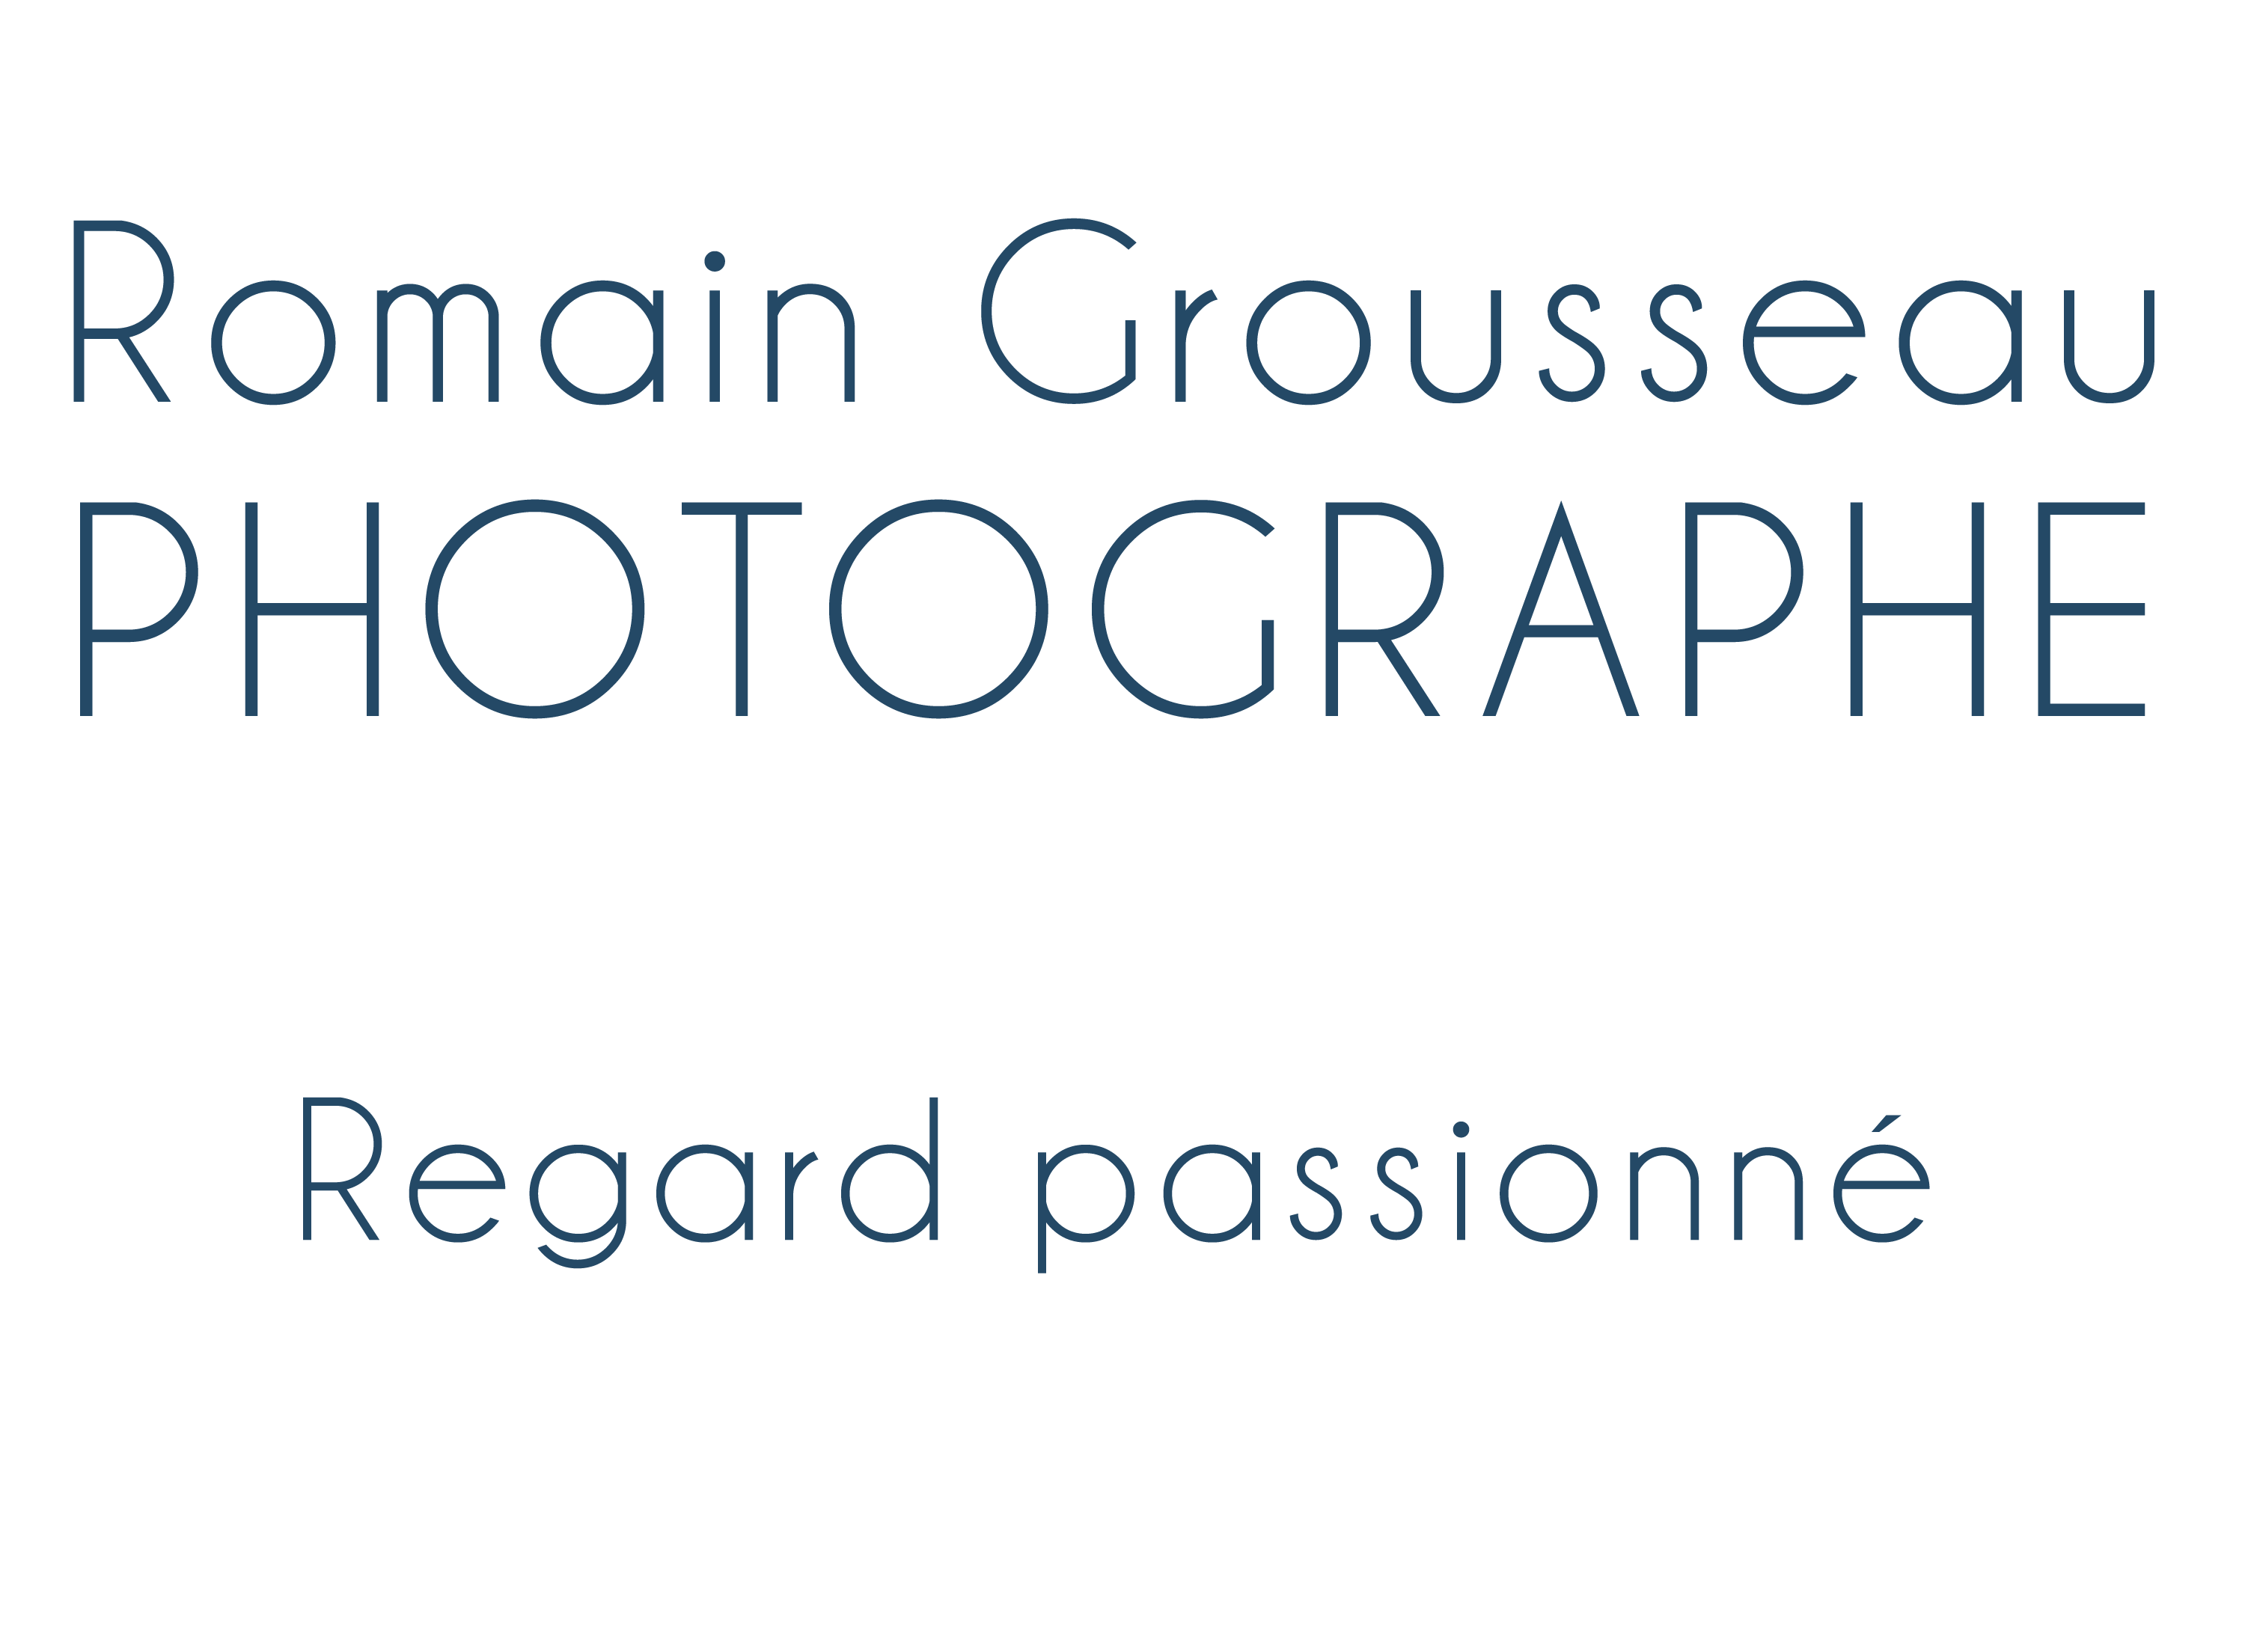 Romain Grousseau photographe à Nantes